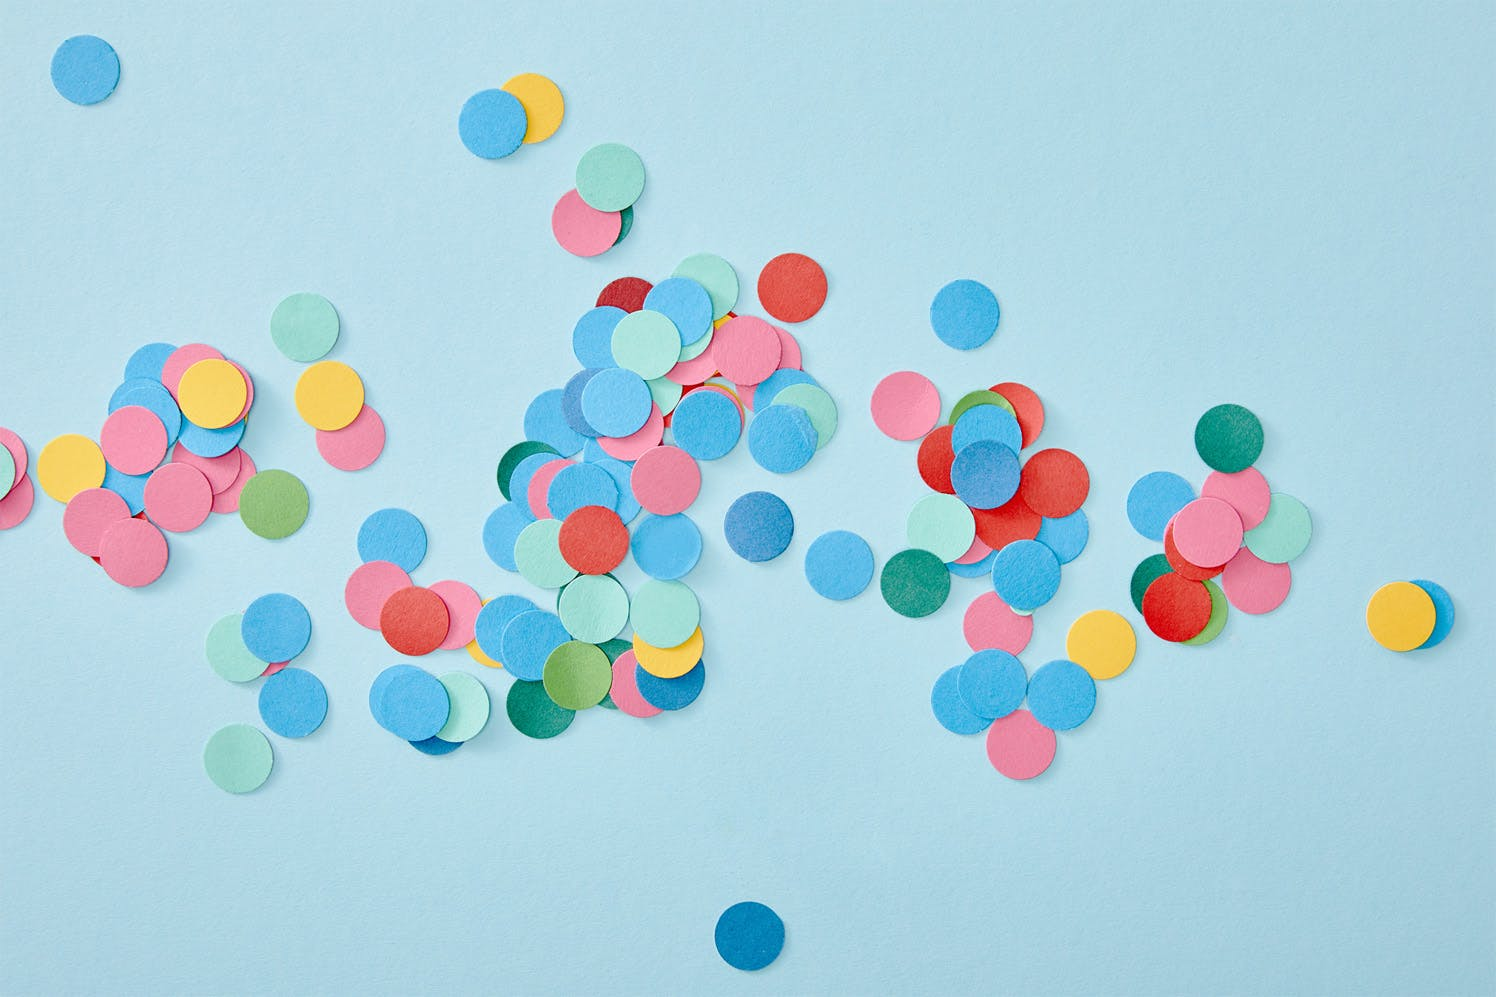 Confetti on a blue background